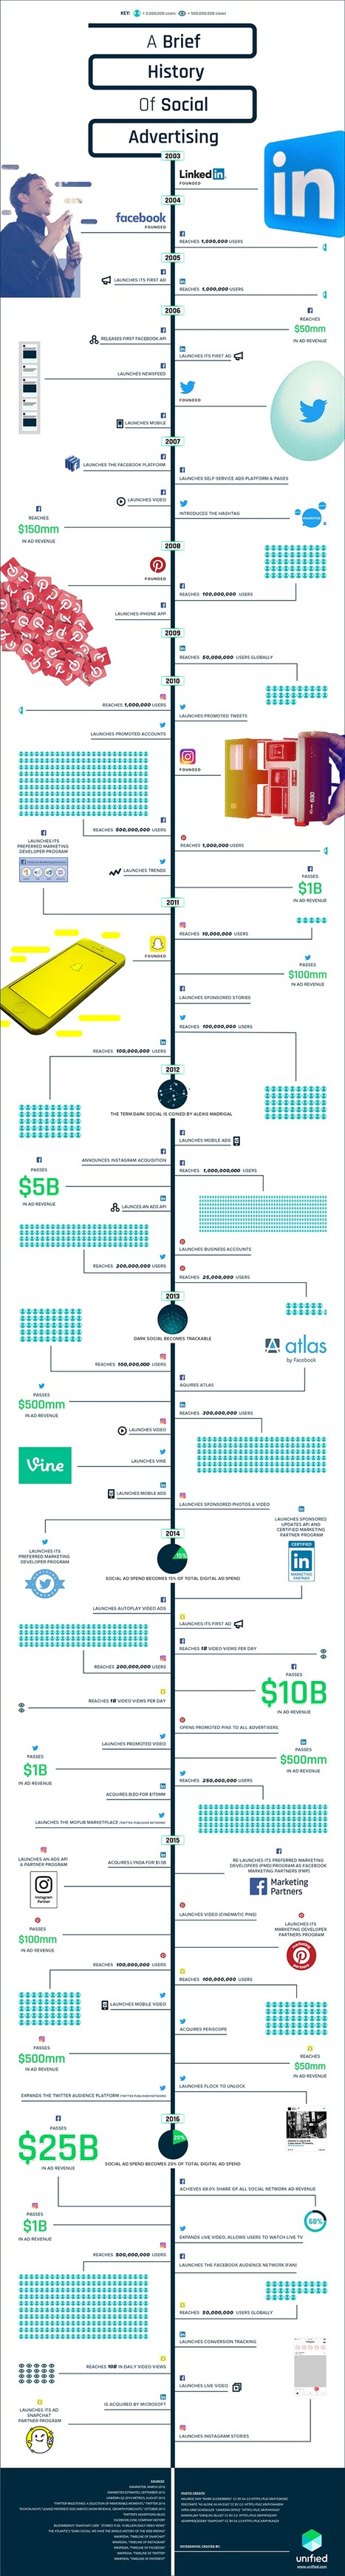 A Brief History of Social Advertising #Infographic | MarketingHits | Scoop.it